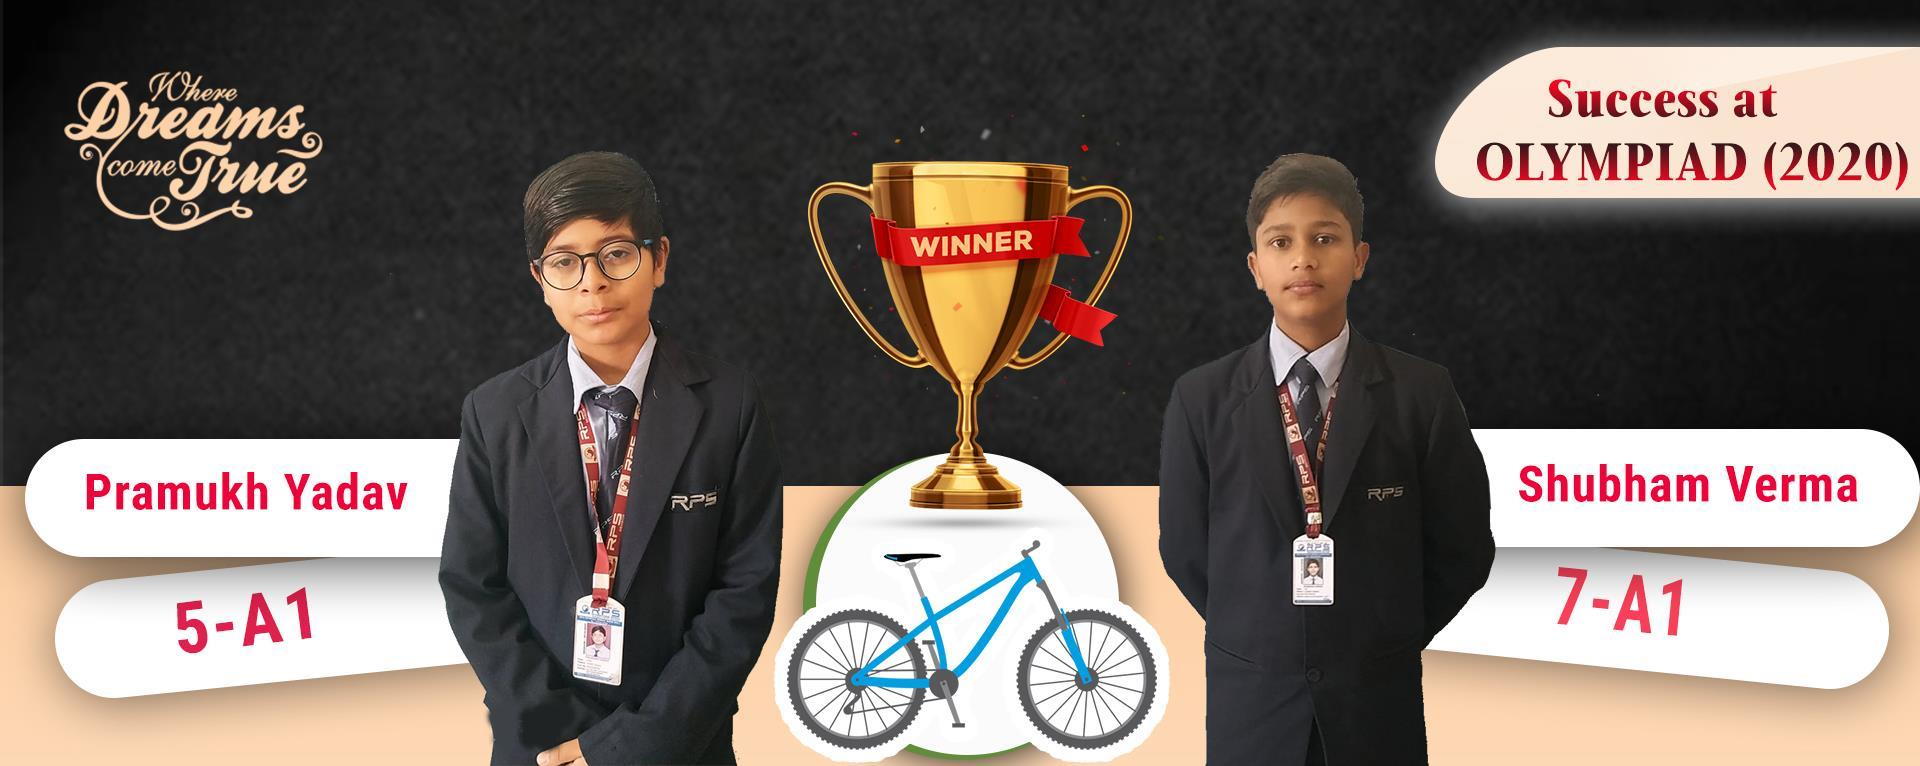 WINER OF OLYMPIAD